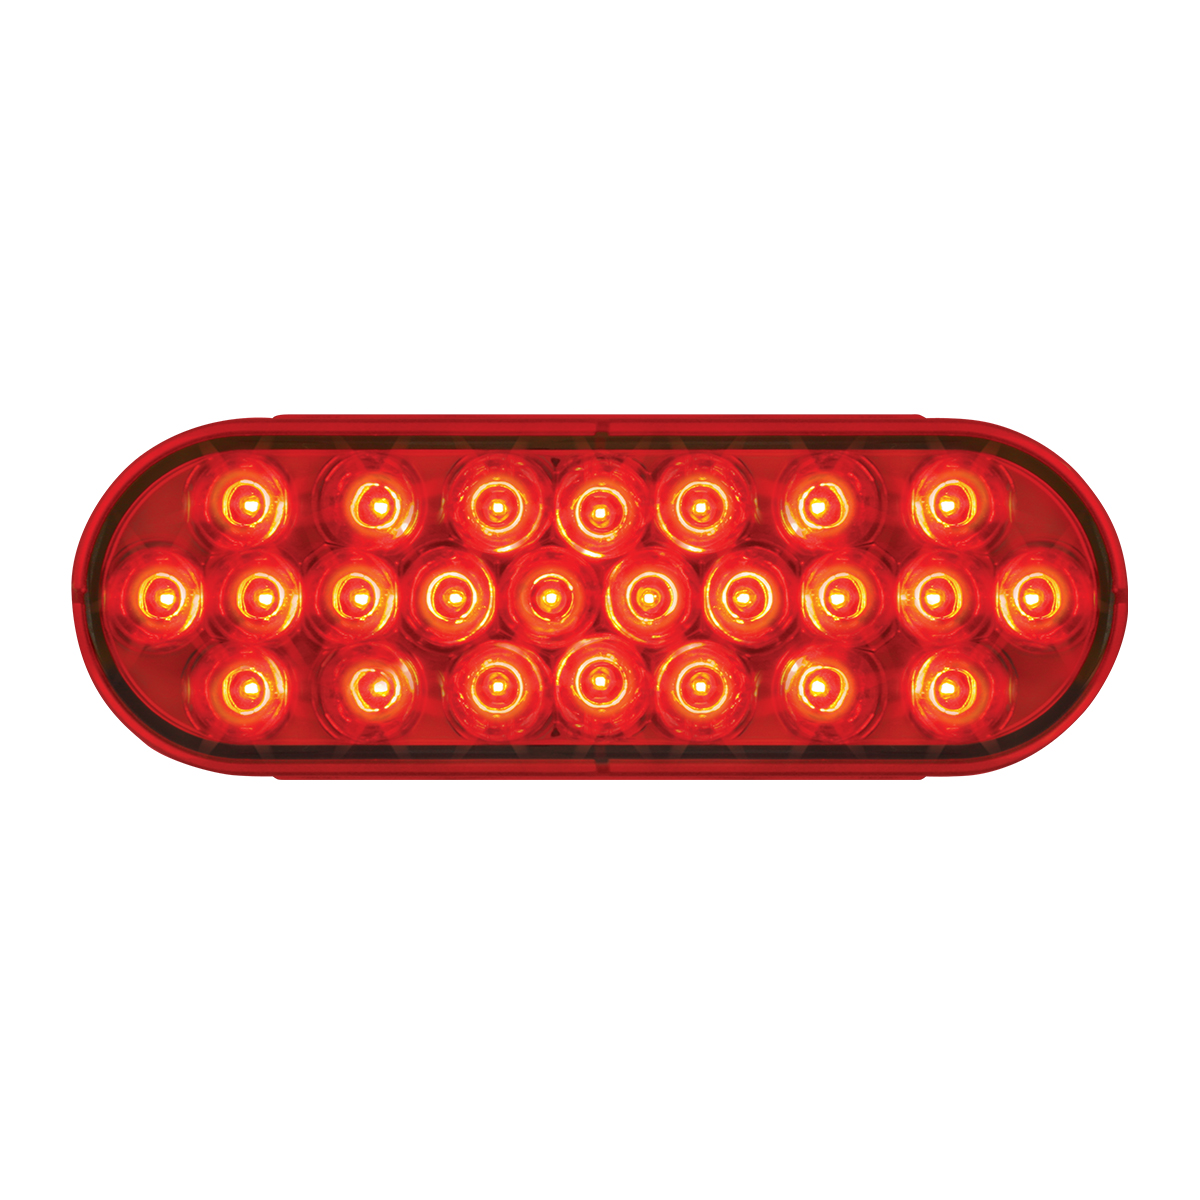 #78233 - Oval Sealed Pearl LED Flat Red/Red Light - Slanted